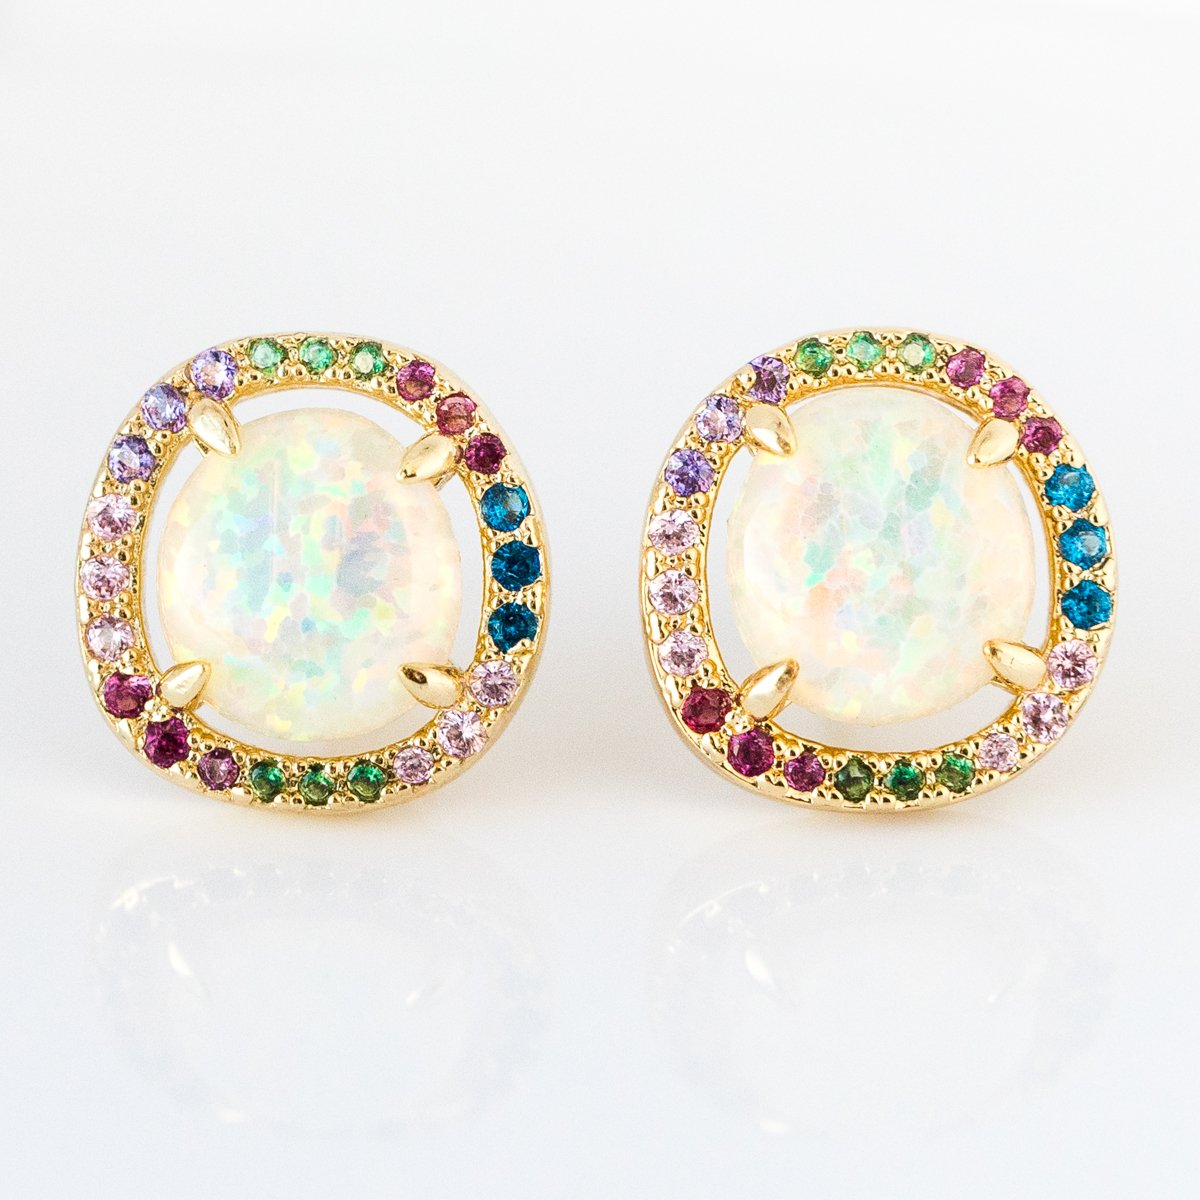 676e94ca5 Sarah Louise Studs in White Opal and Rainbow CZ - earrings - Melinda Maria  local eclectic